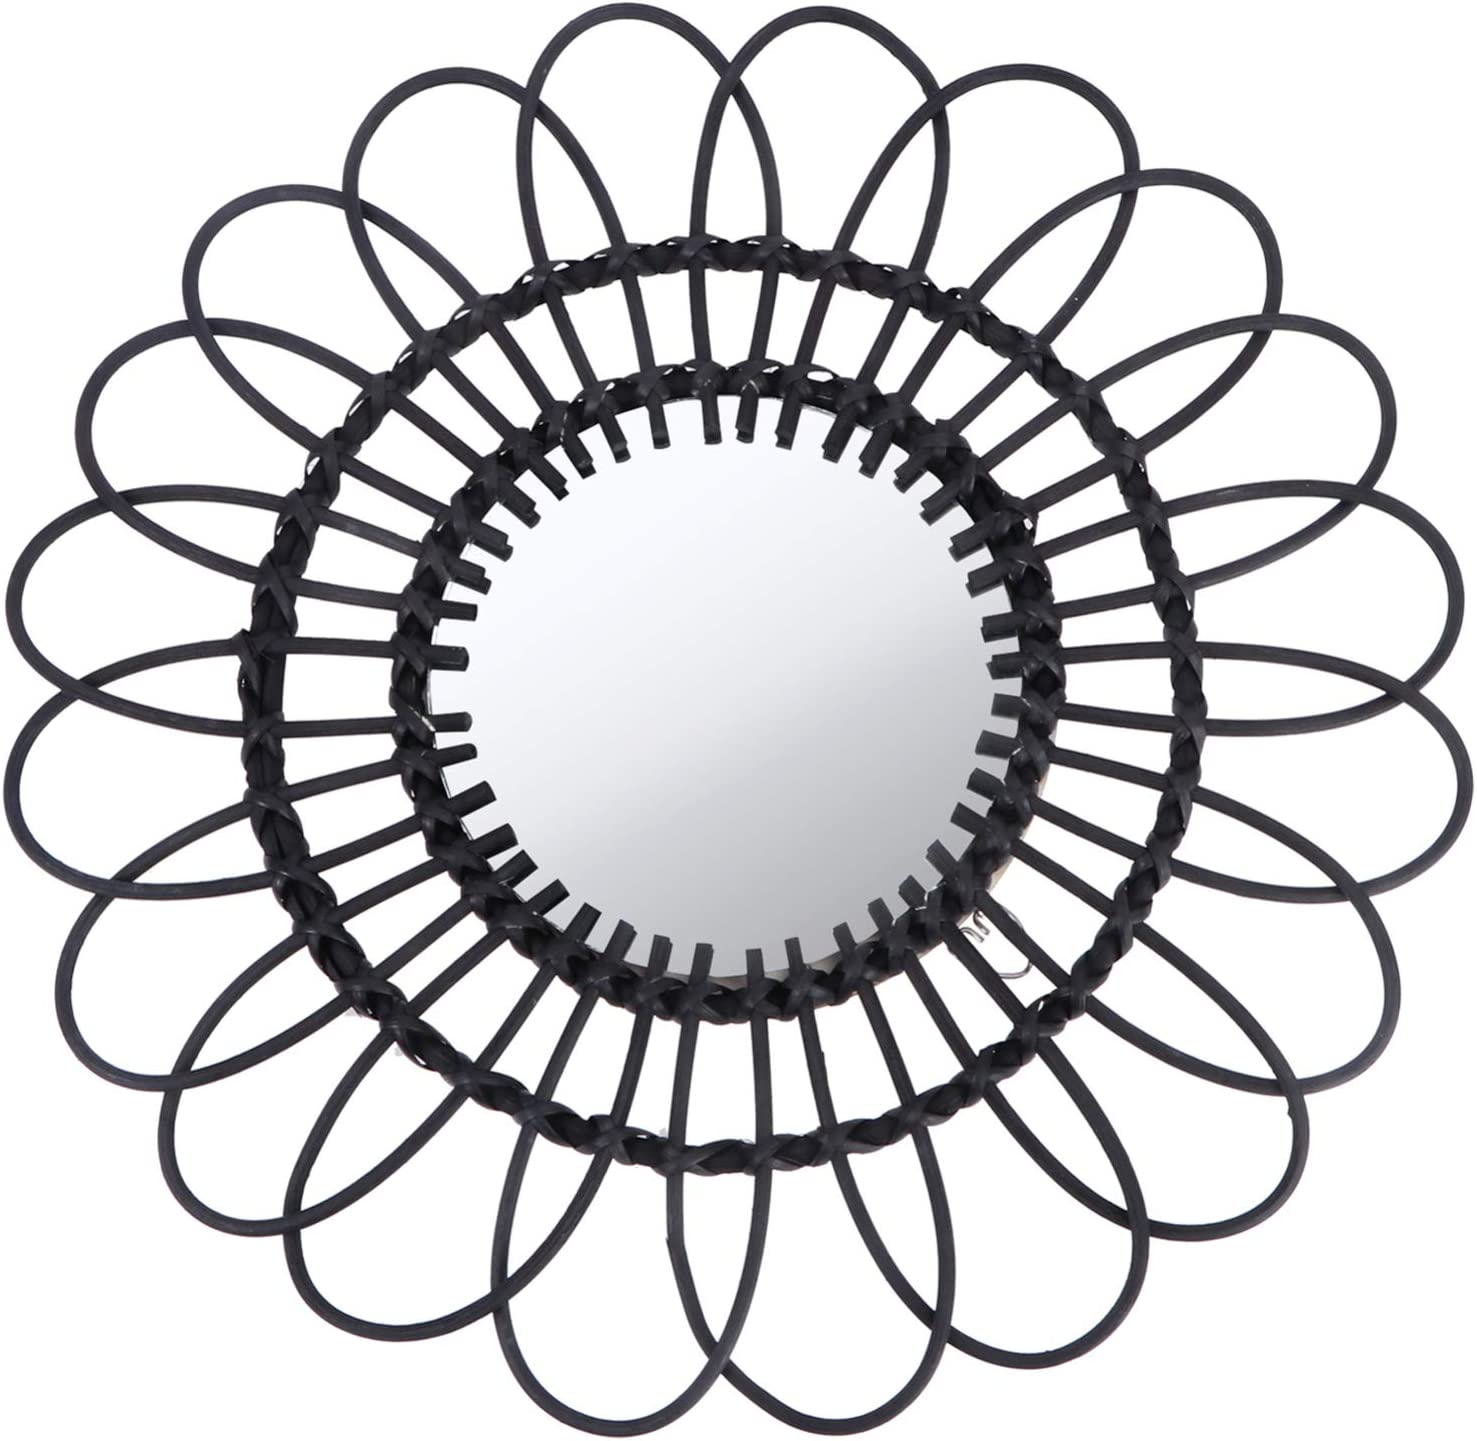 Cabilock Hanging Mirror Popular brand in the world Rattan No Directly managed store Circular Wall Sunflower